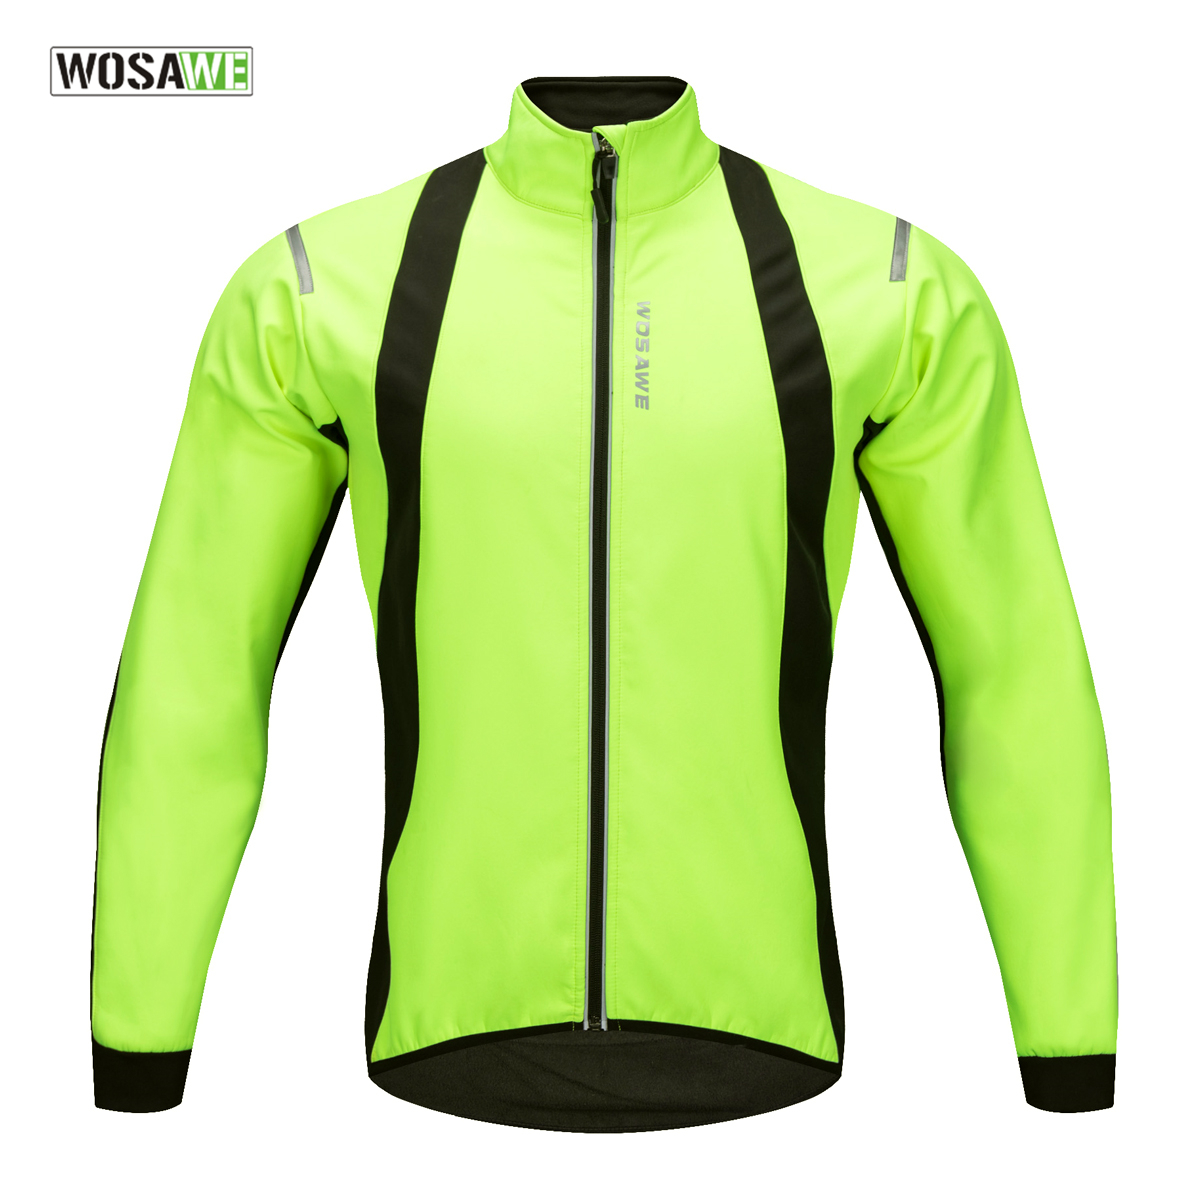 WOSAWE 2017 Windproof Cycling Jacket Winter Warm Up Bicycle Clothing Water Repellent Front Sports Coat Thermal MTB Bike Jersey